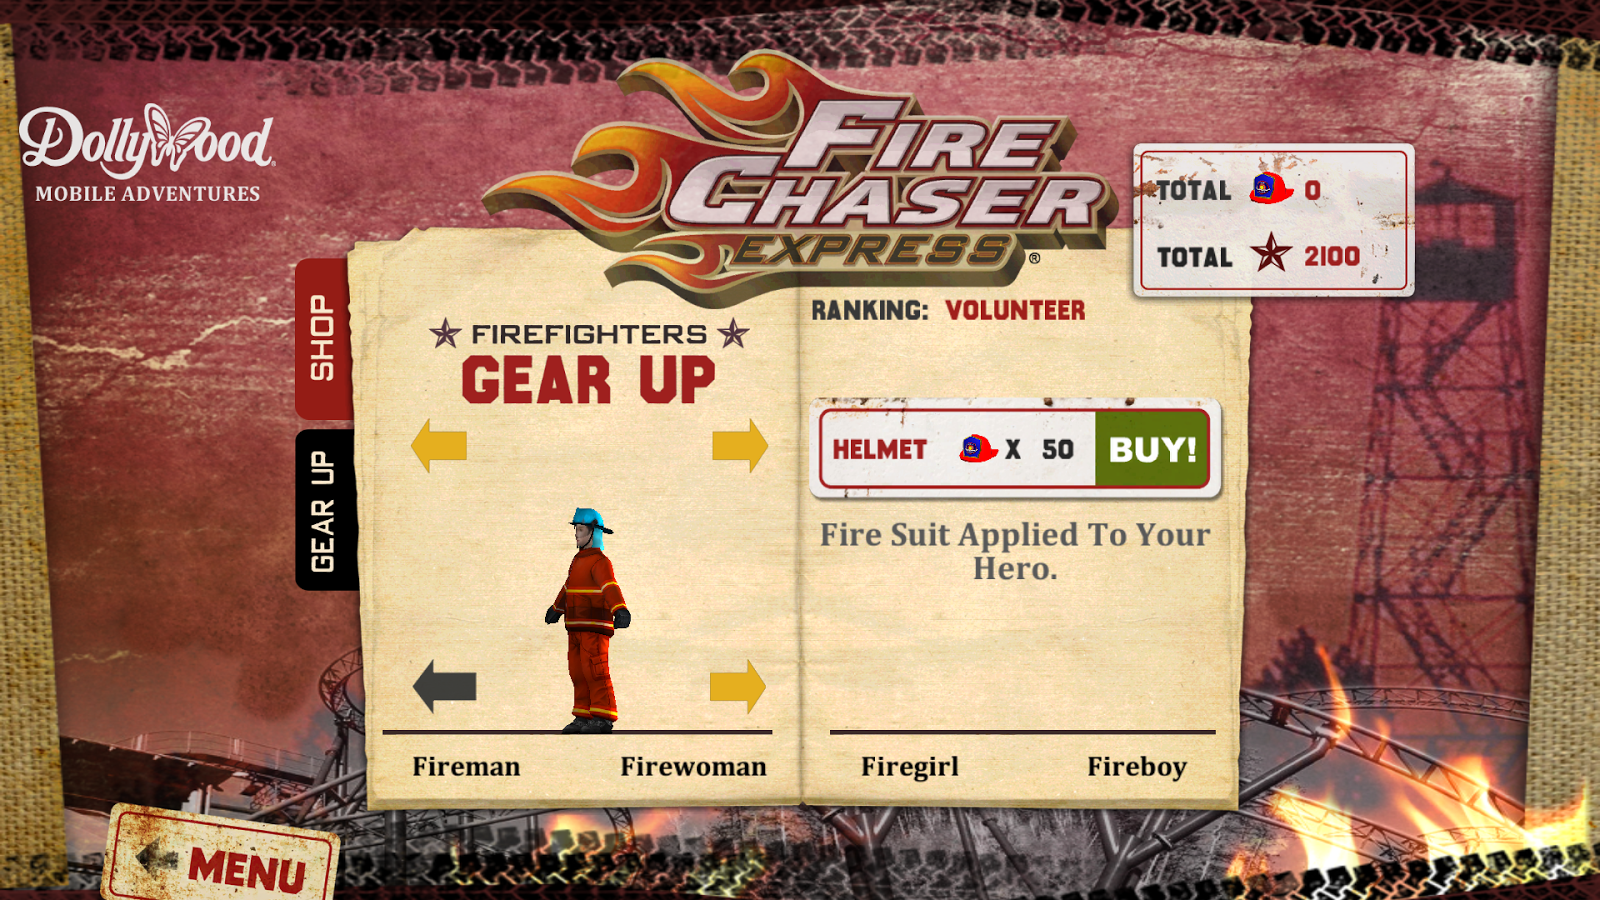 FireChaser Express - screenshot